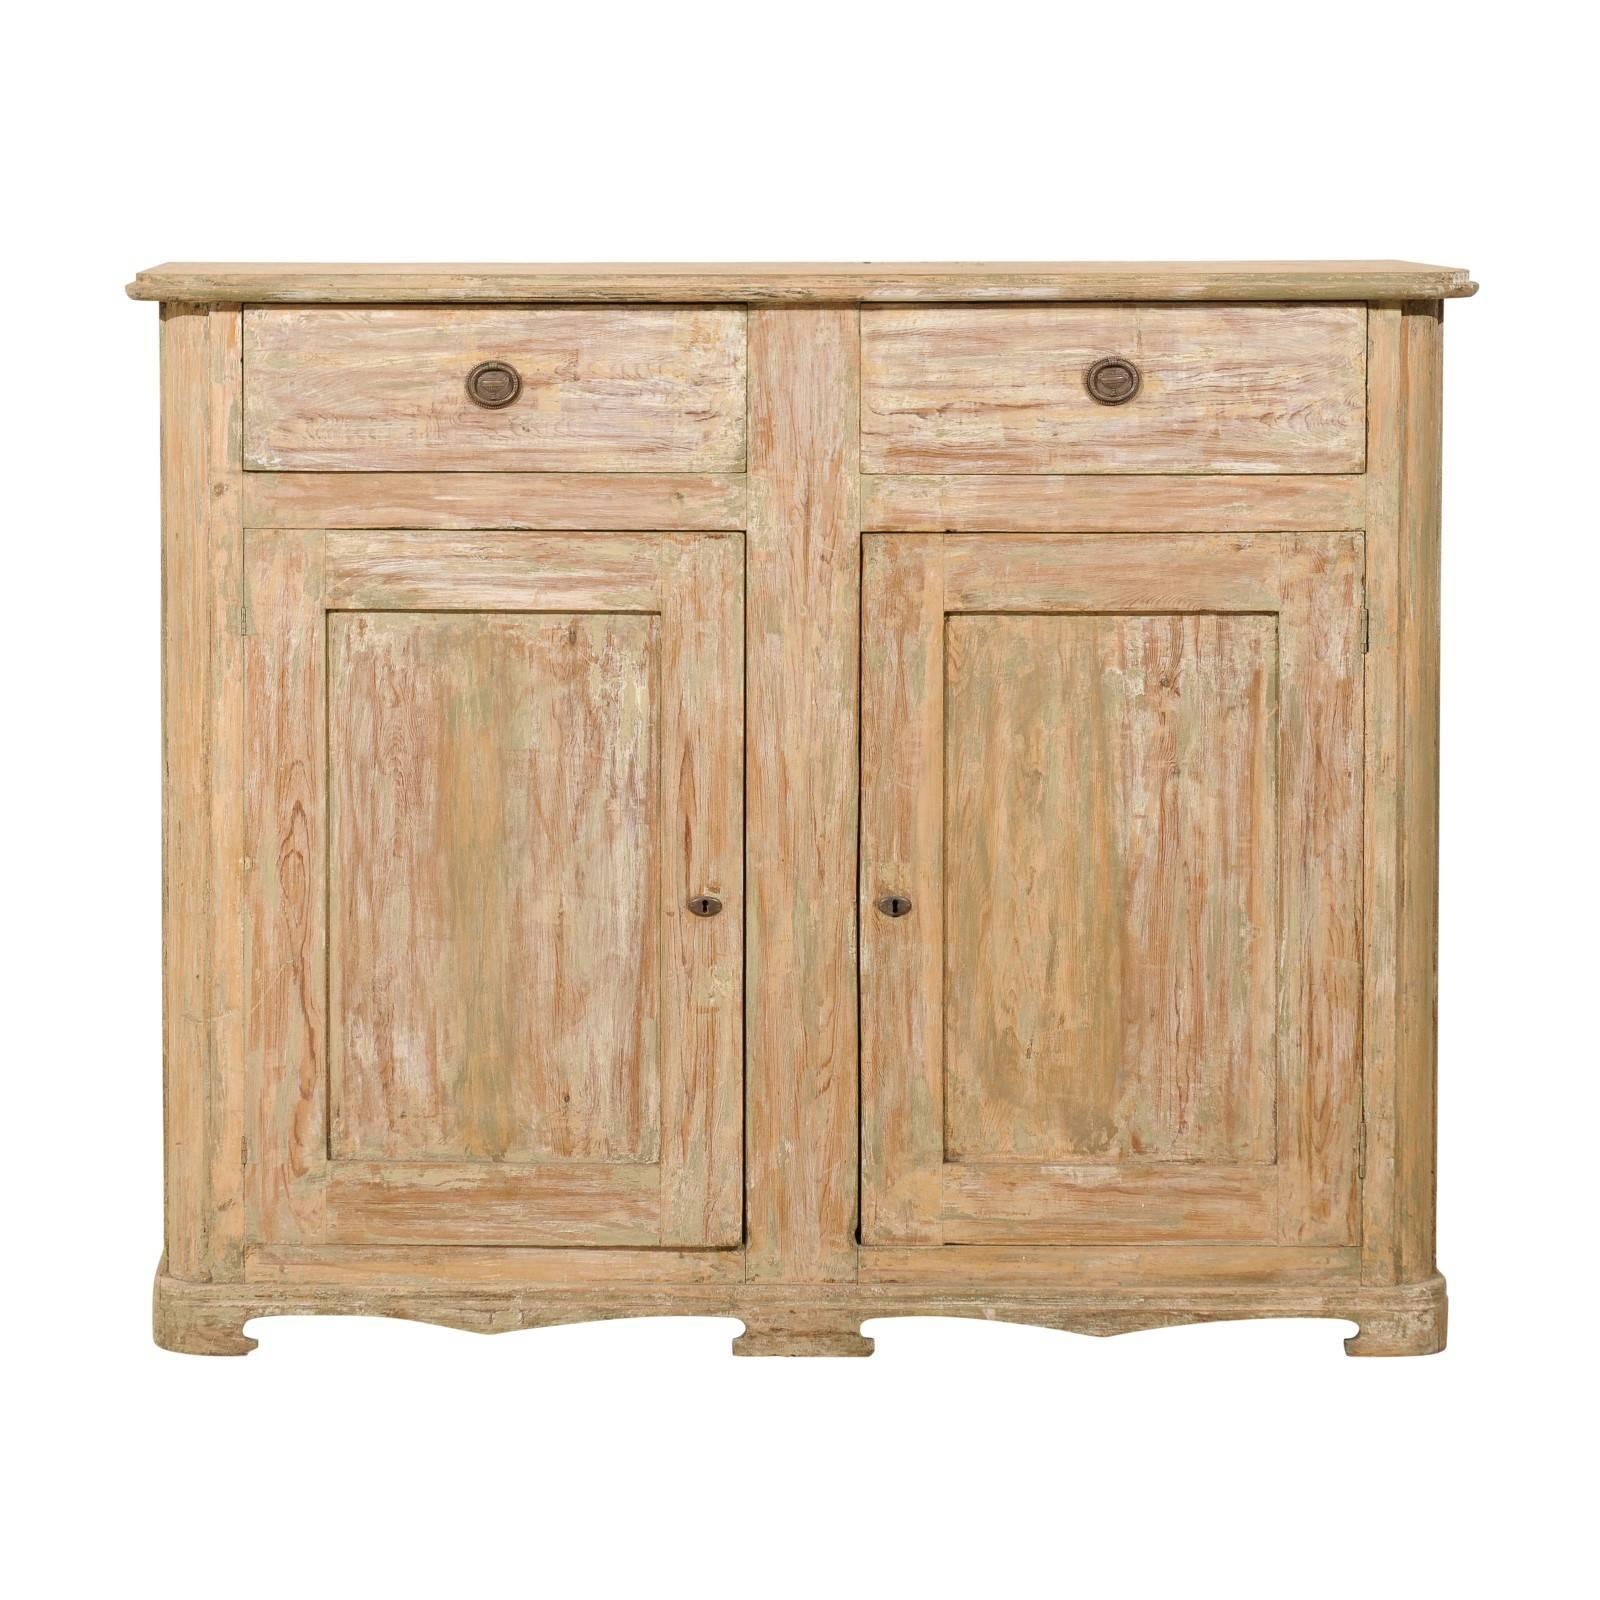 Swedish Painted Wood Buffet with Two Drawers and Two Doors from the 19th Century